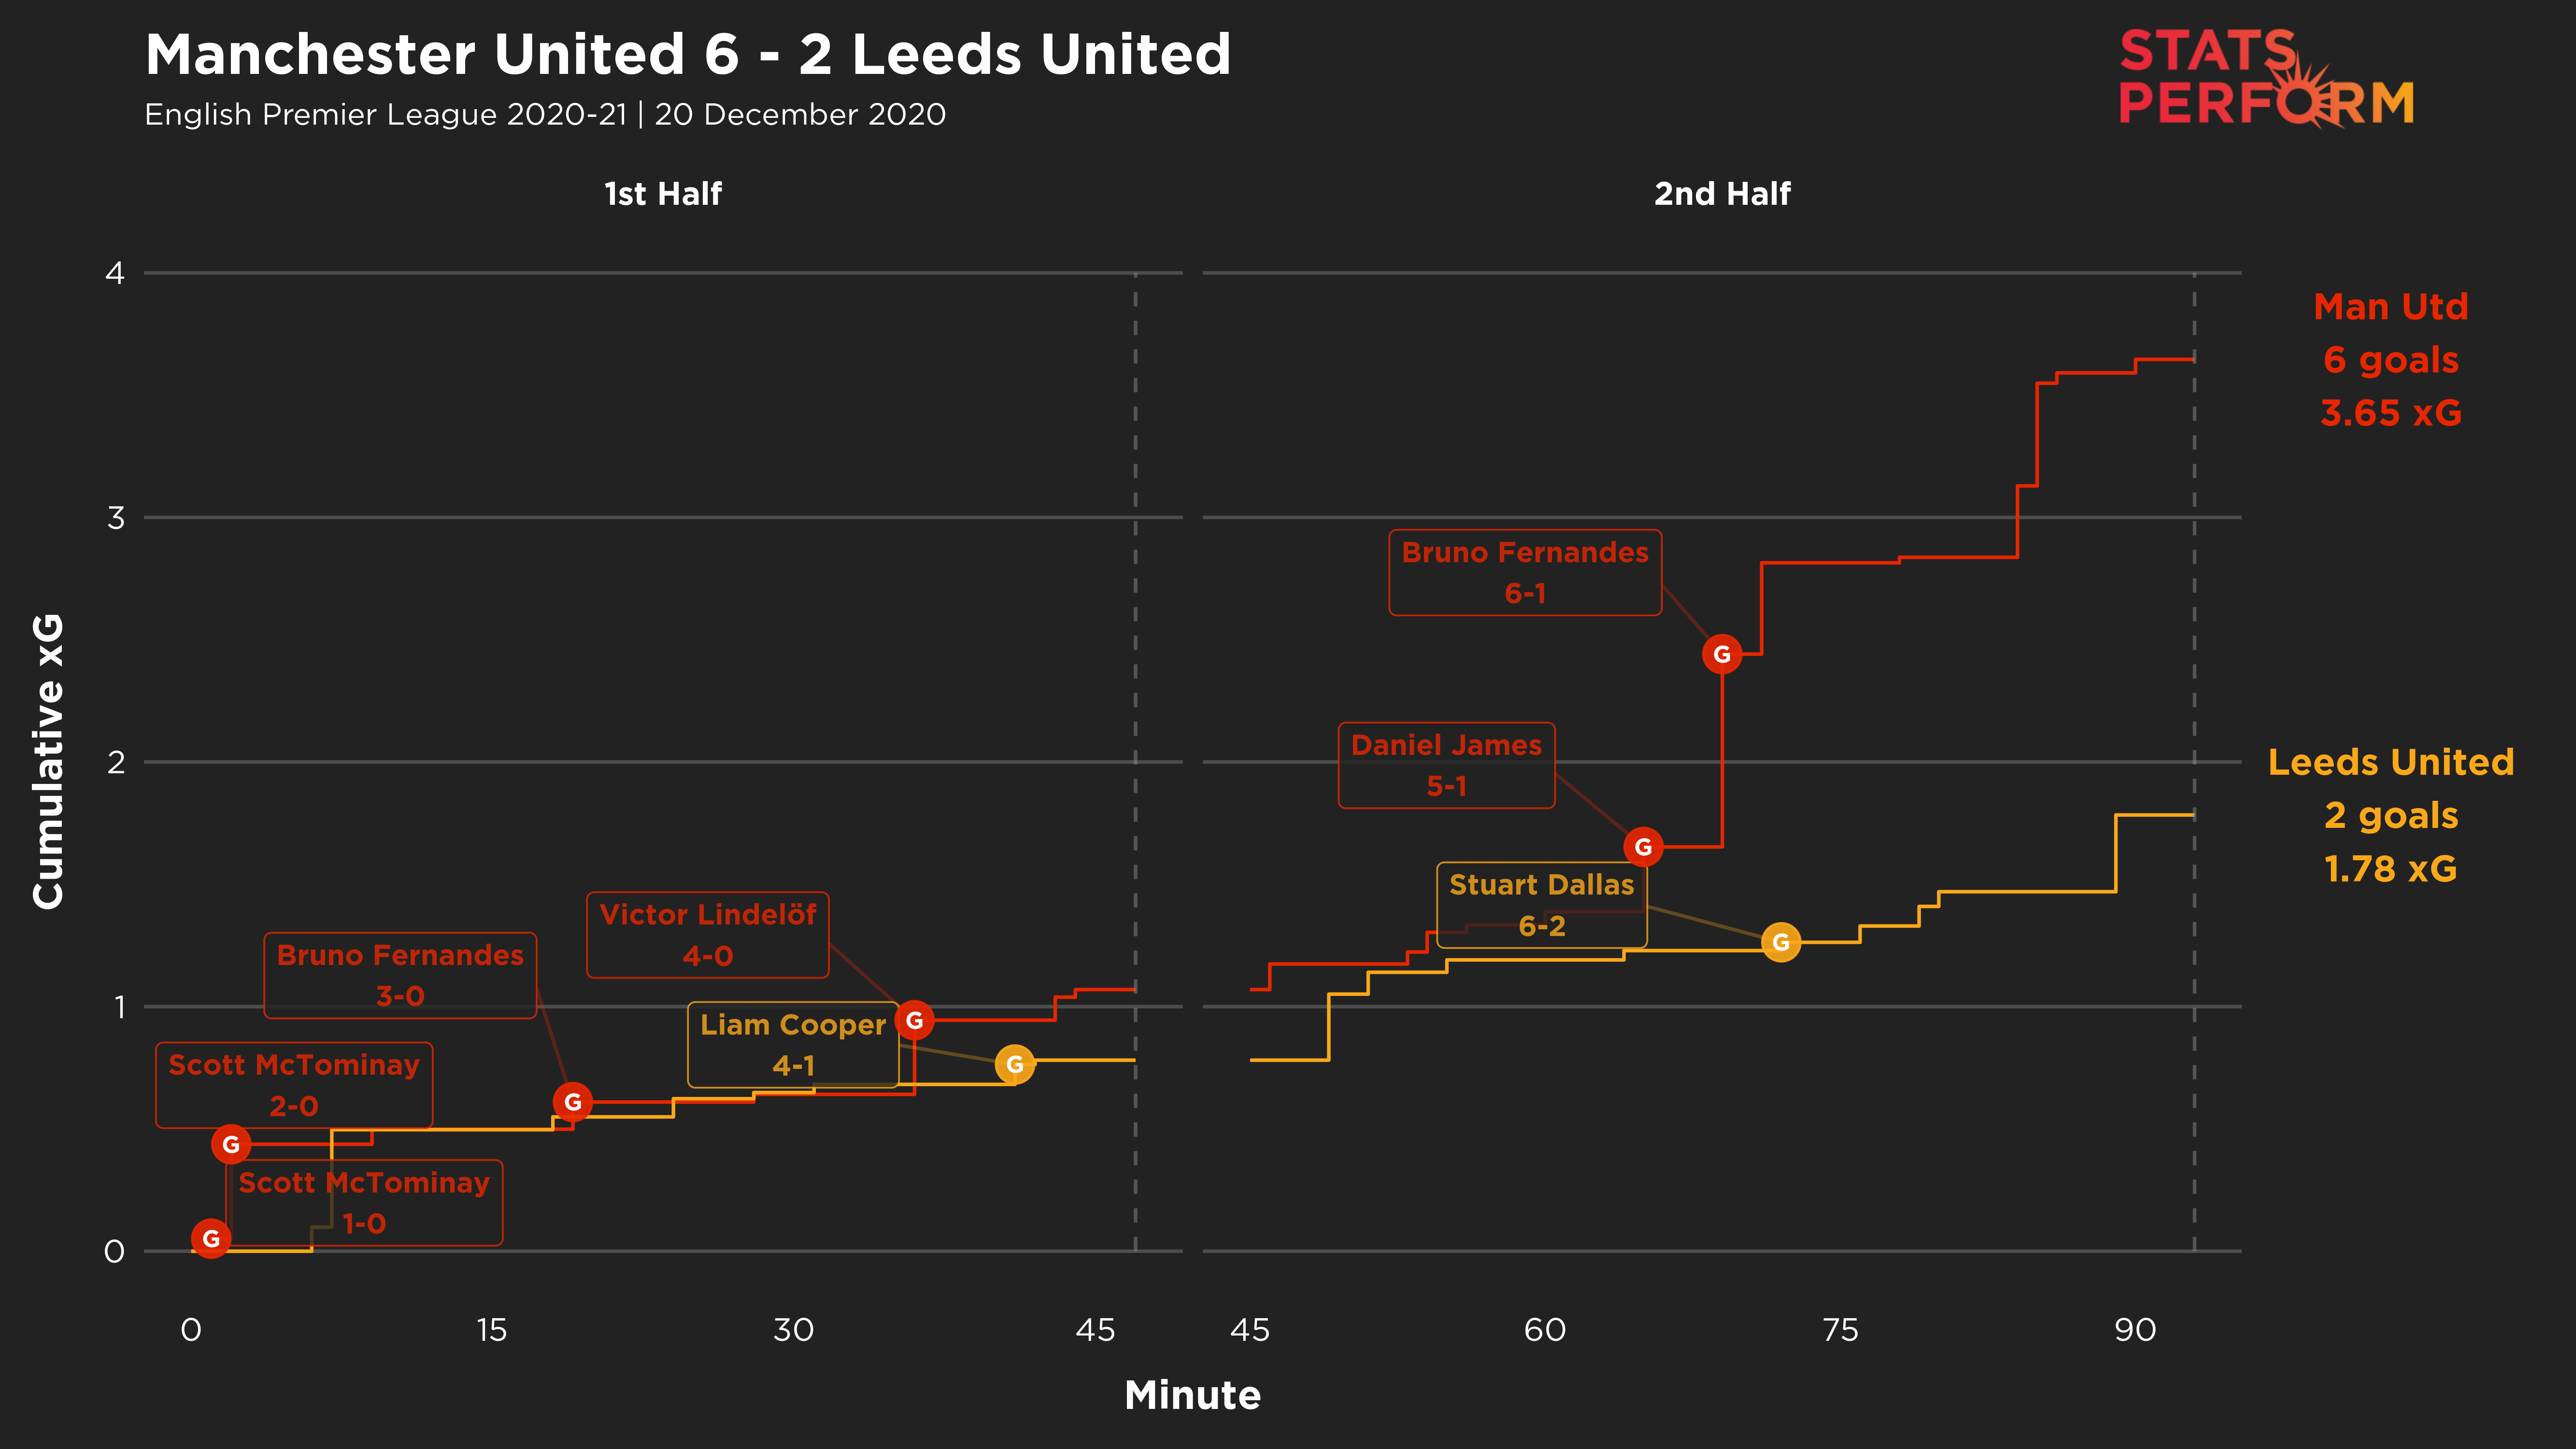 For a while, despite Man Utd's lead, they and Leeds were neck-and-neck in terms of xG